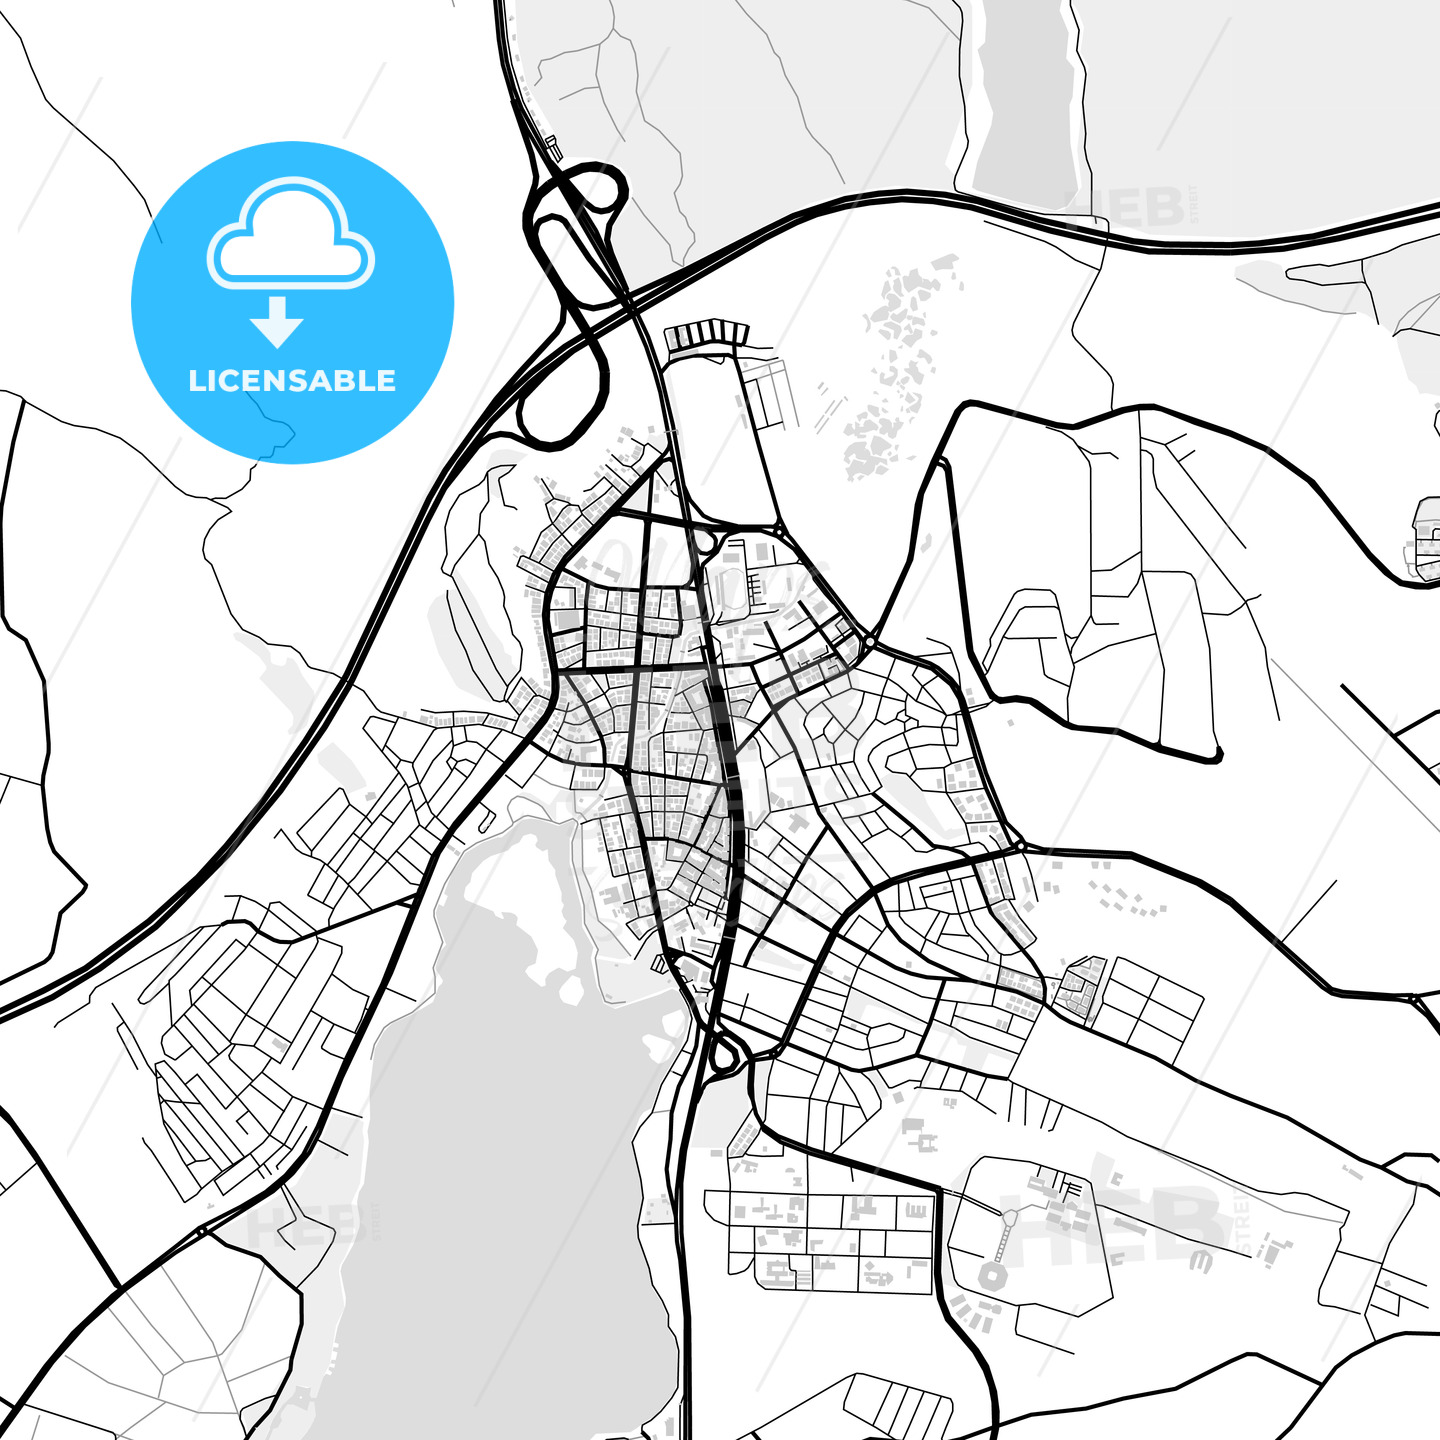 Downtown map of Gölbaşı, Turkey - HEBSTREITS